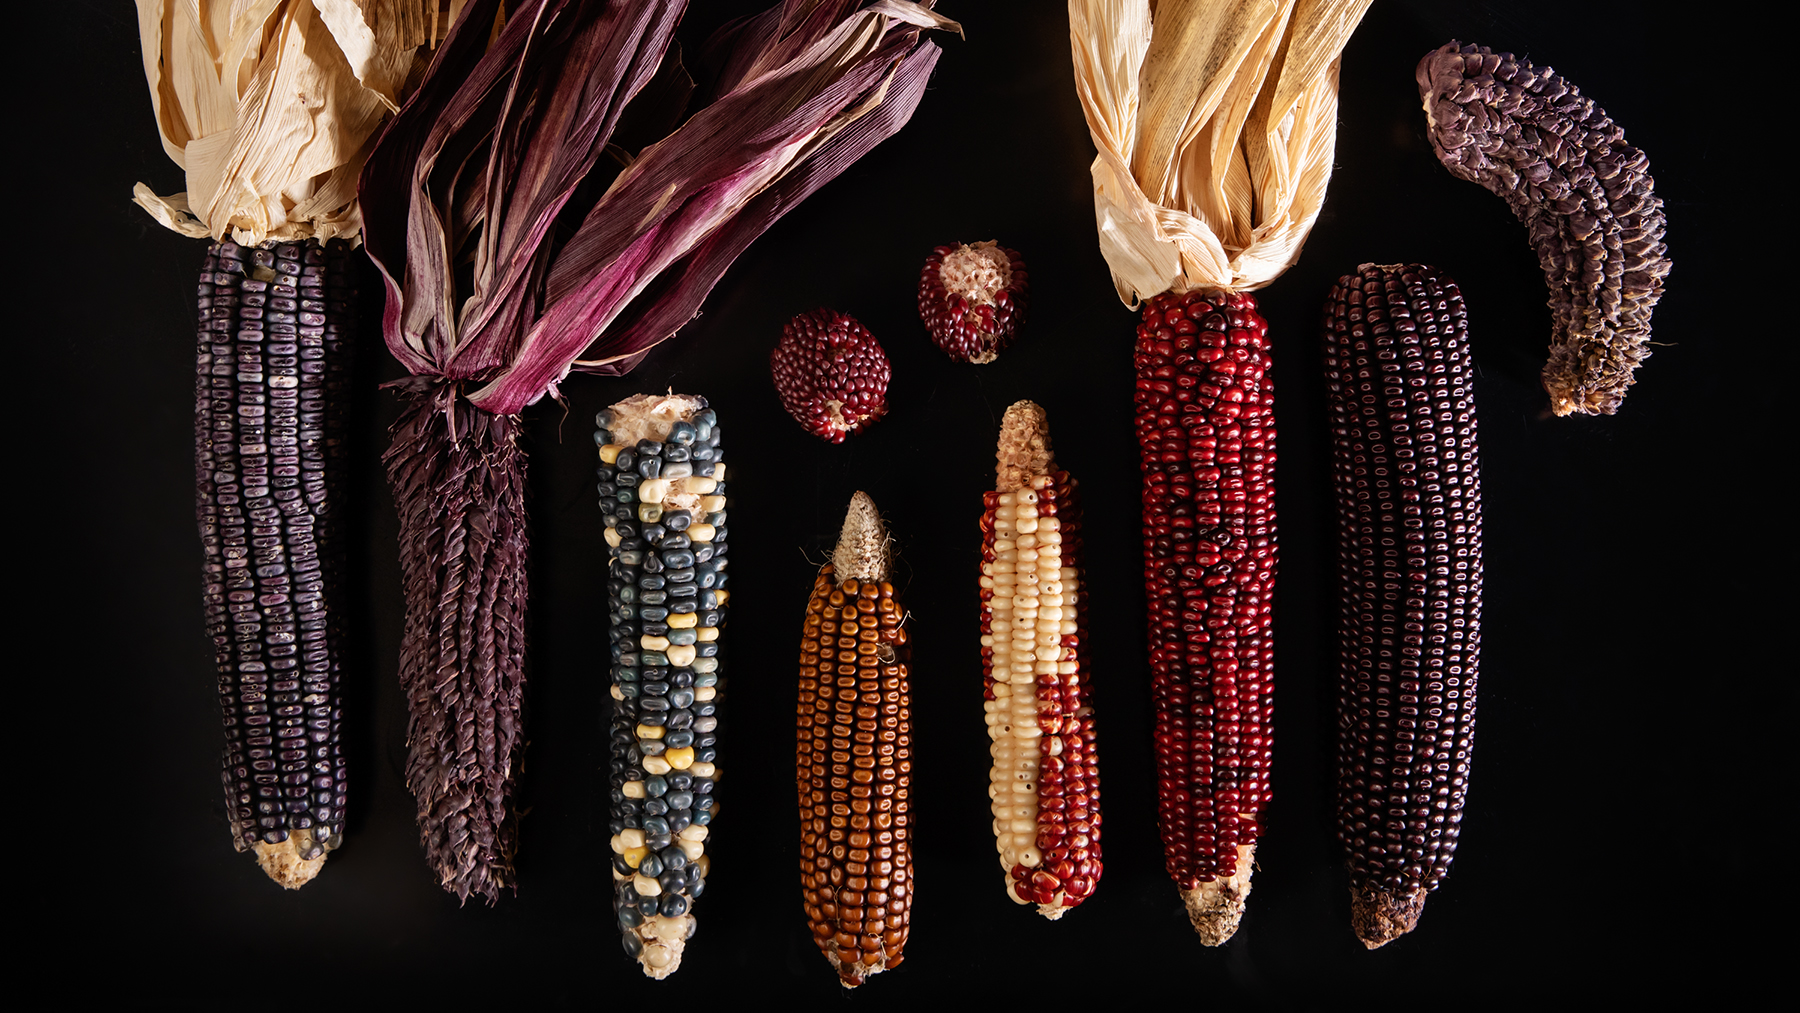 varieties of purple corn. Photo by L. B. Stauffer